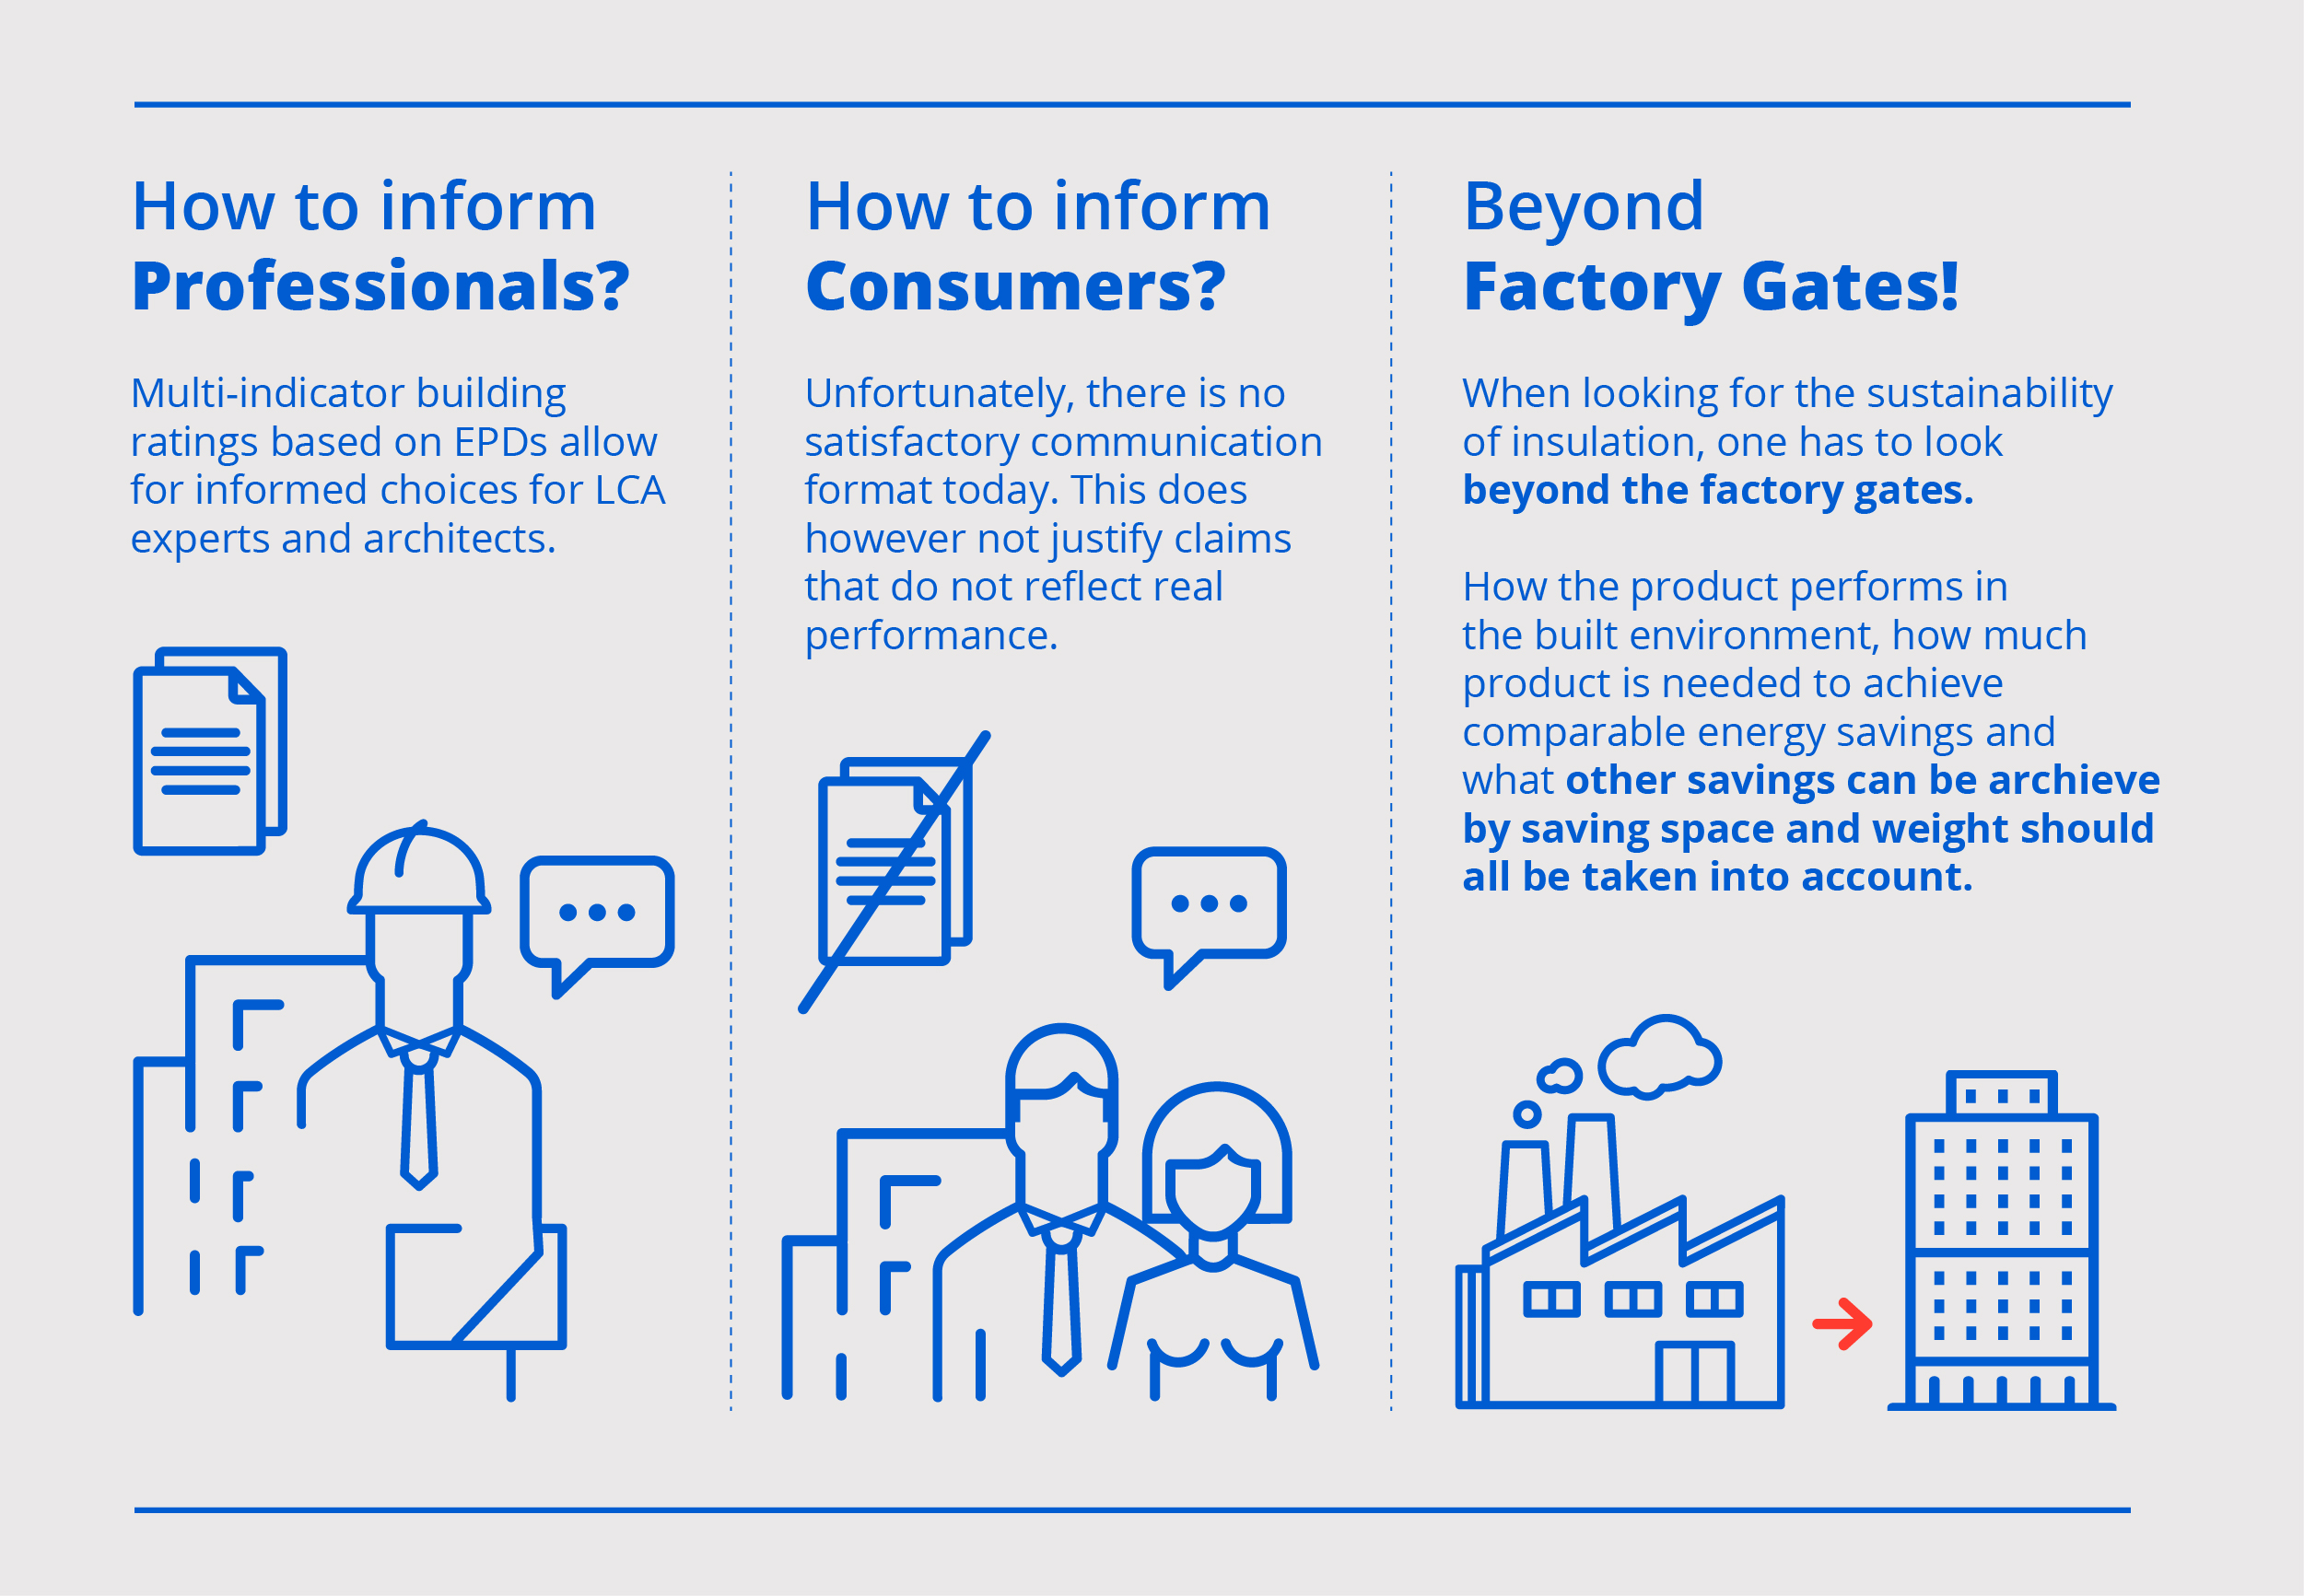 how to inform professionals_consumers_factory gates